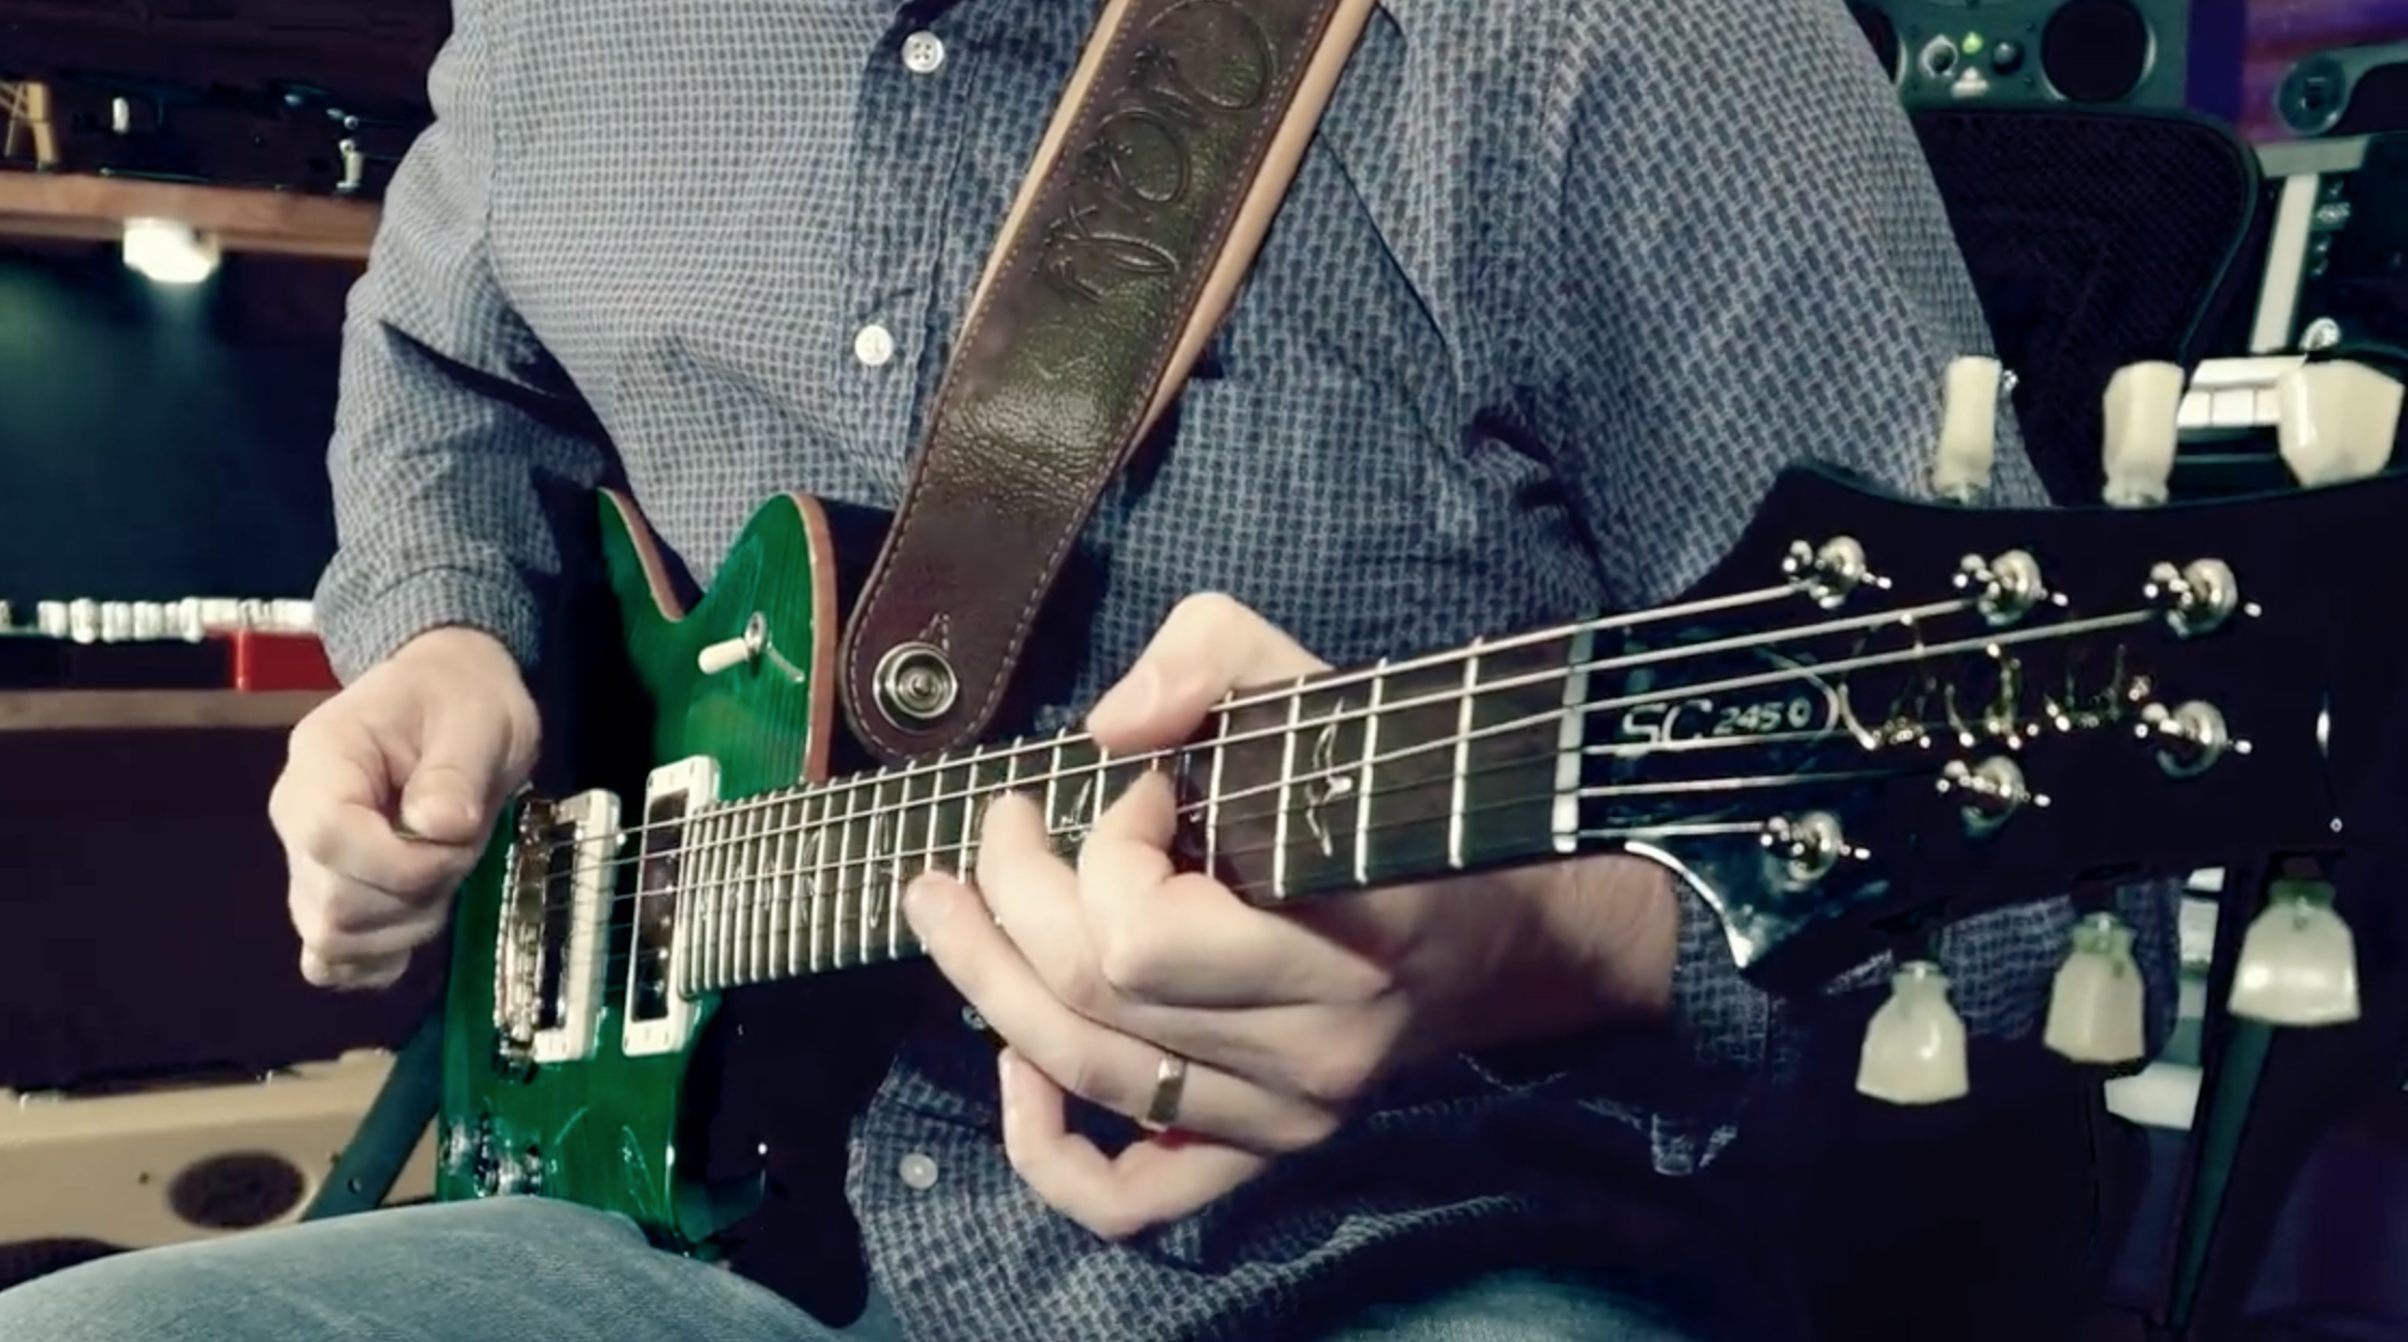 TIPS, TRICKS & TECHNIQUES - Learn and execute techniques like sweep picking, legato, tapping, and more. While these lessons are presented in a specific order, you can feel free to bounce around based on what looks interesting to you. Move at your own pace, and enjoy a new arsenal of skills!